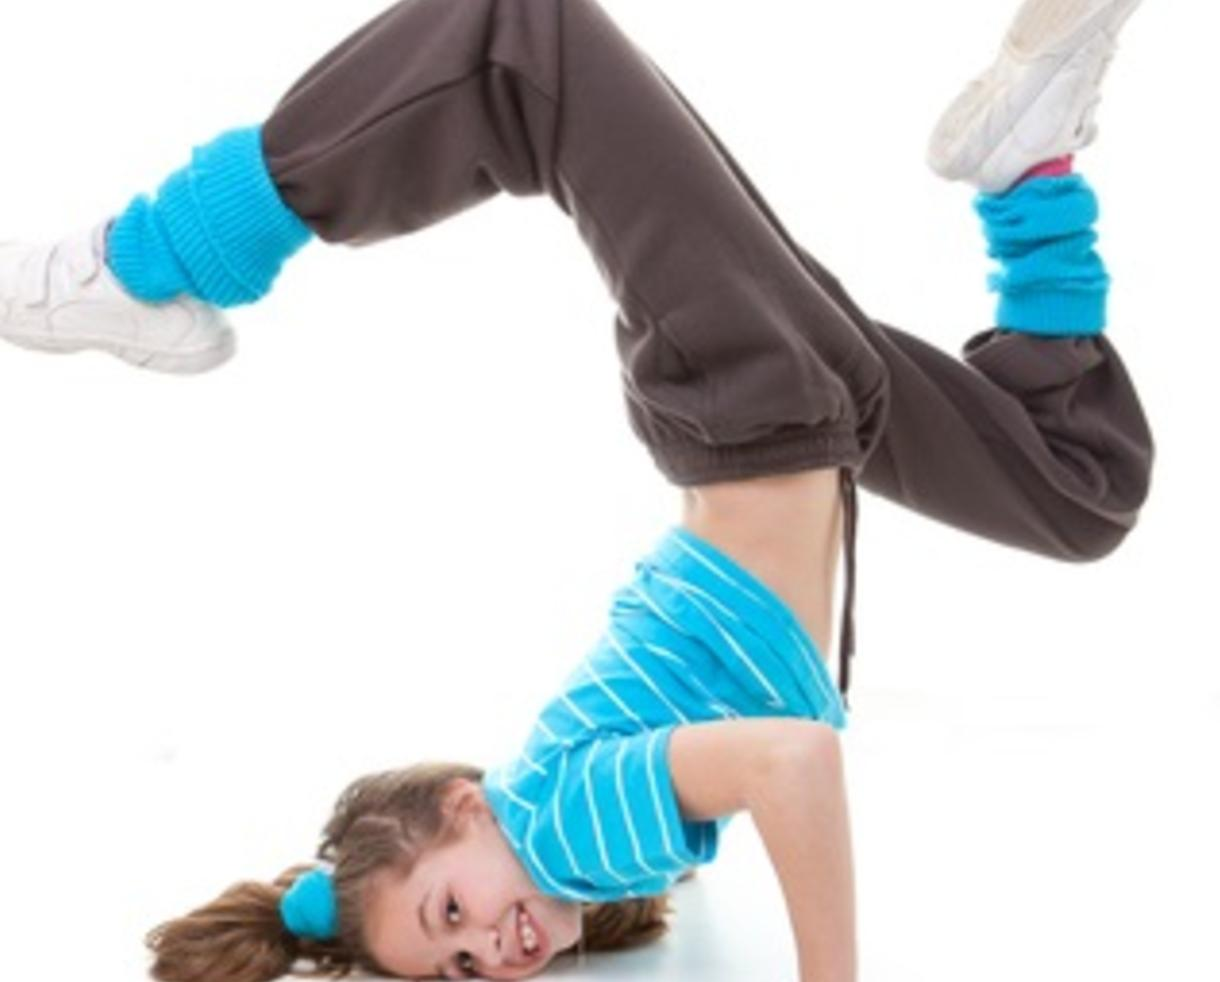 $129 for Dance Camp at All Star Legacy for Ages 5-14 - Ashburn or Manassas (33% Off!)